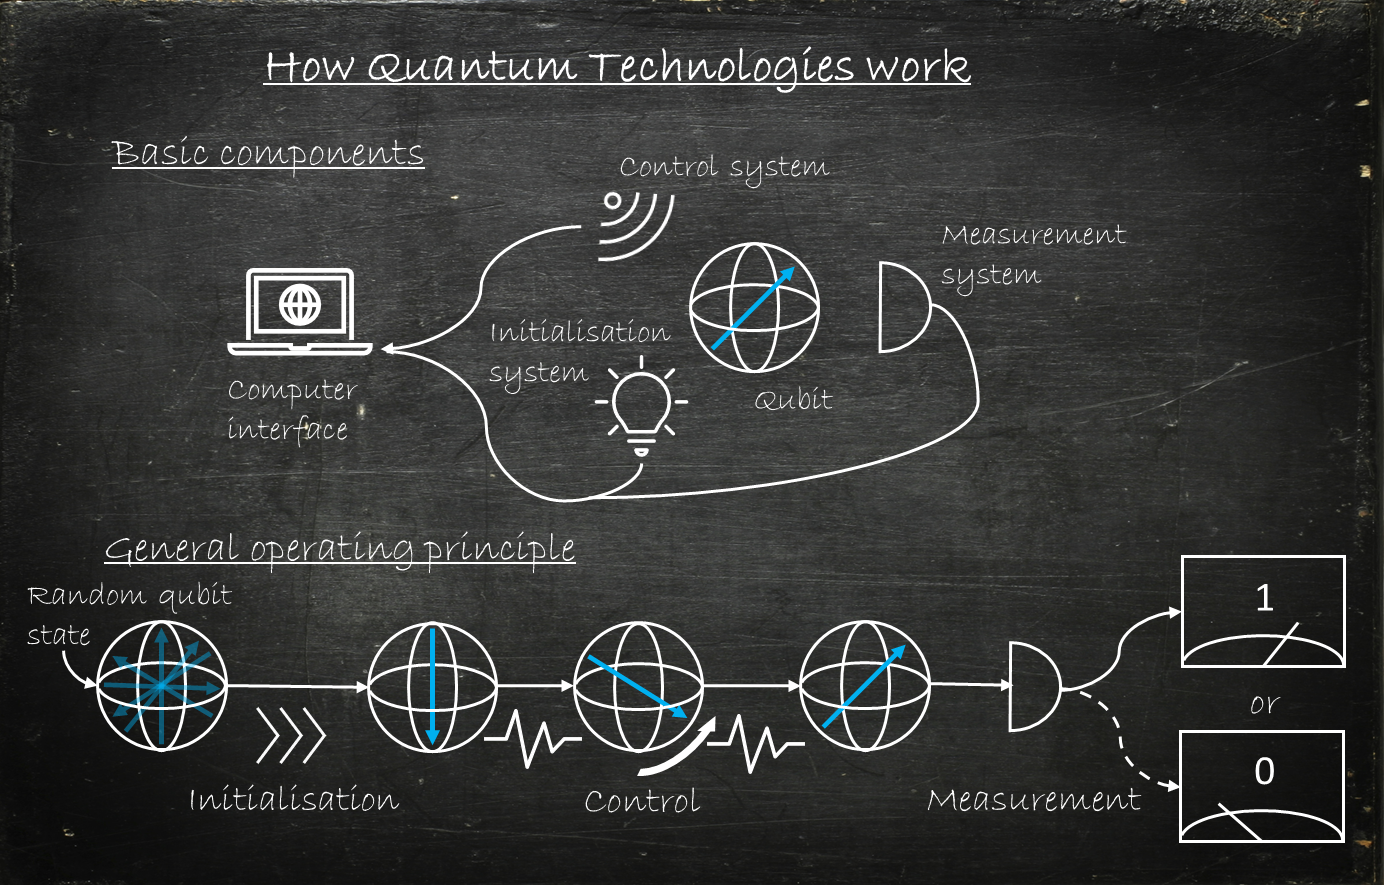 How Quantum Technologies work